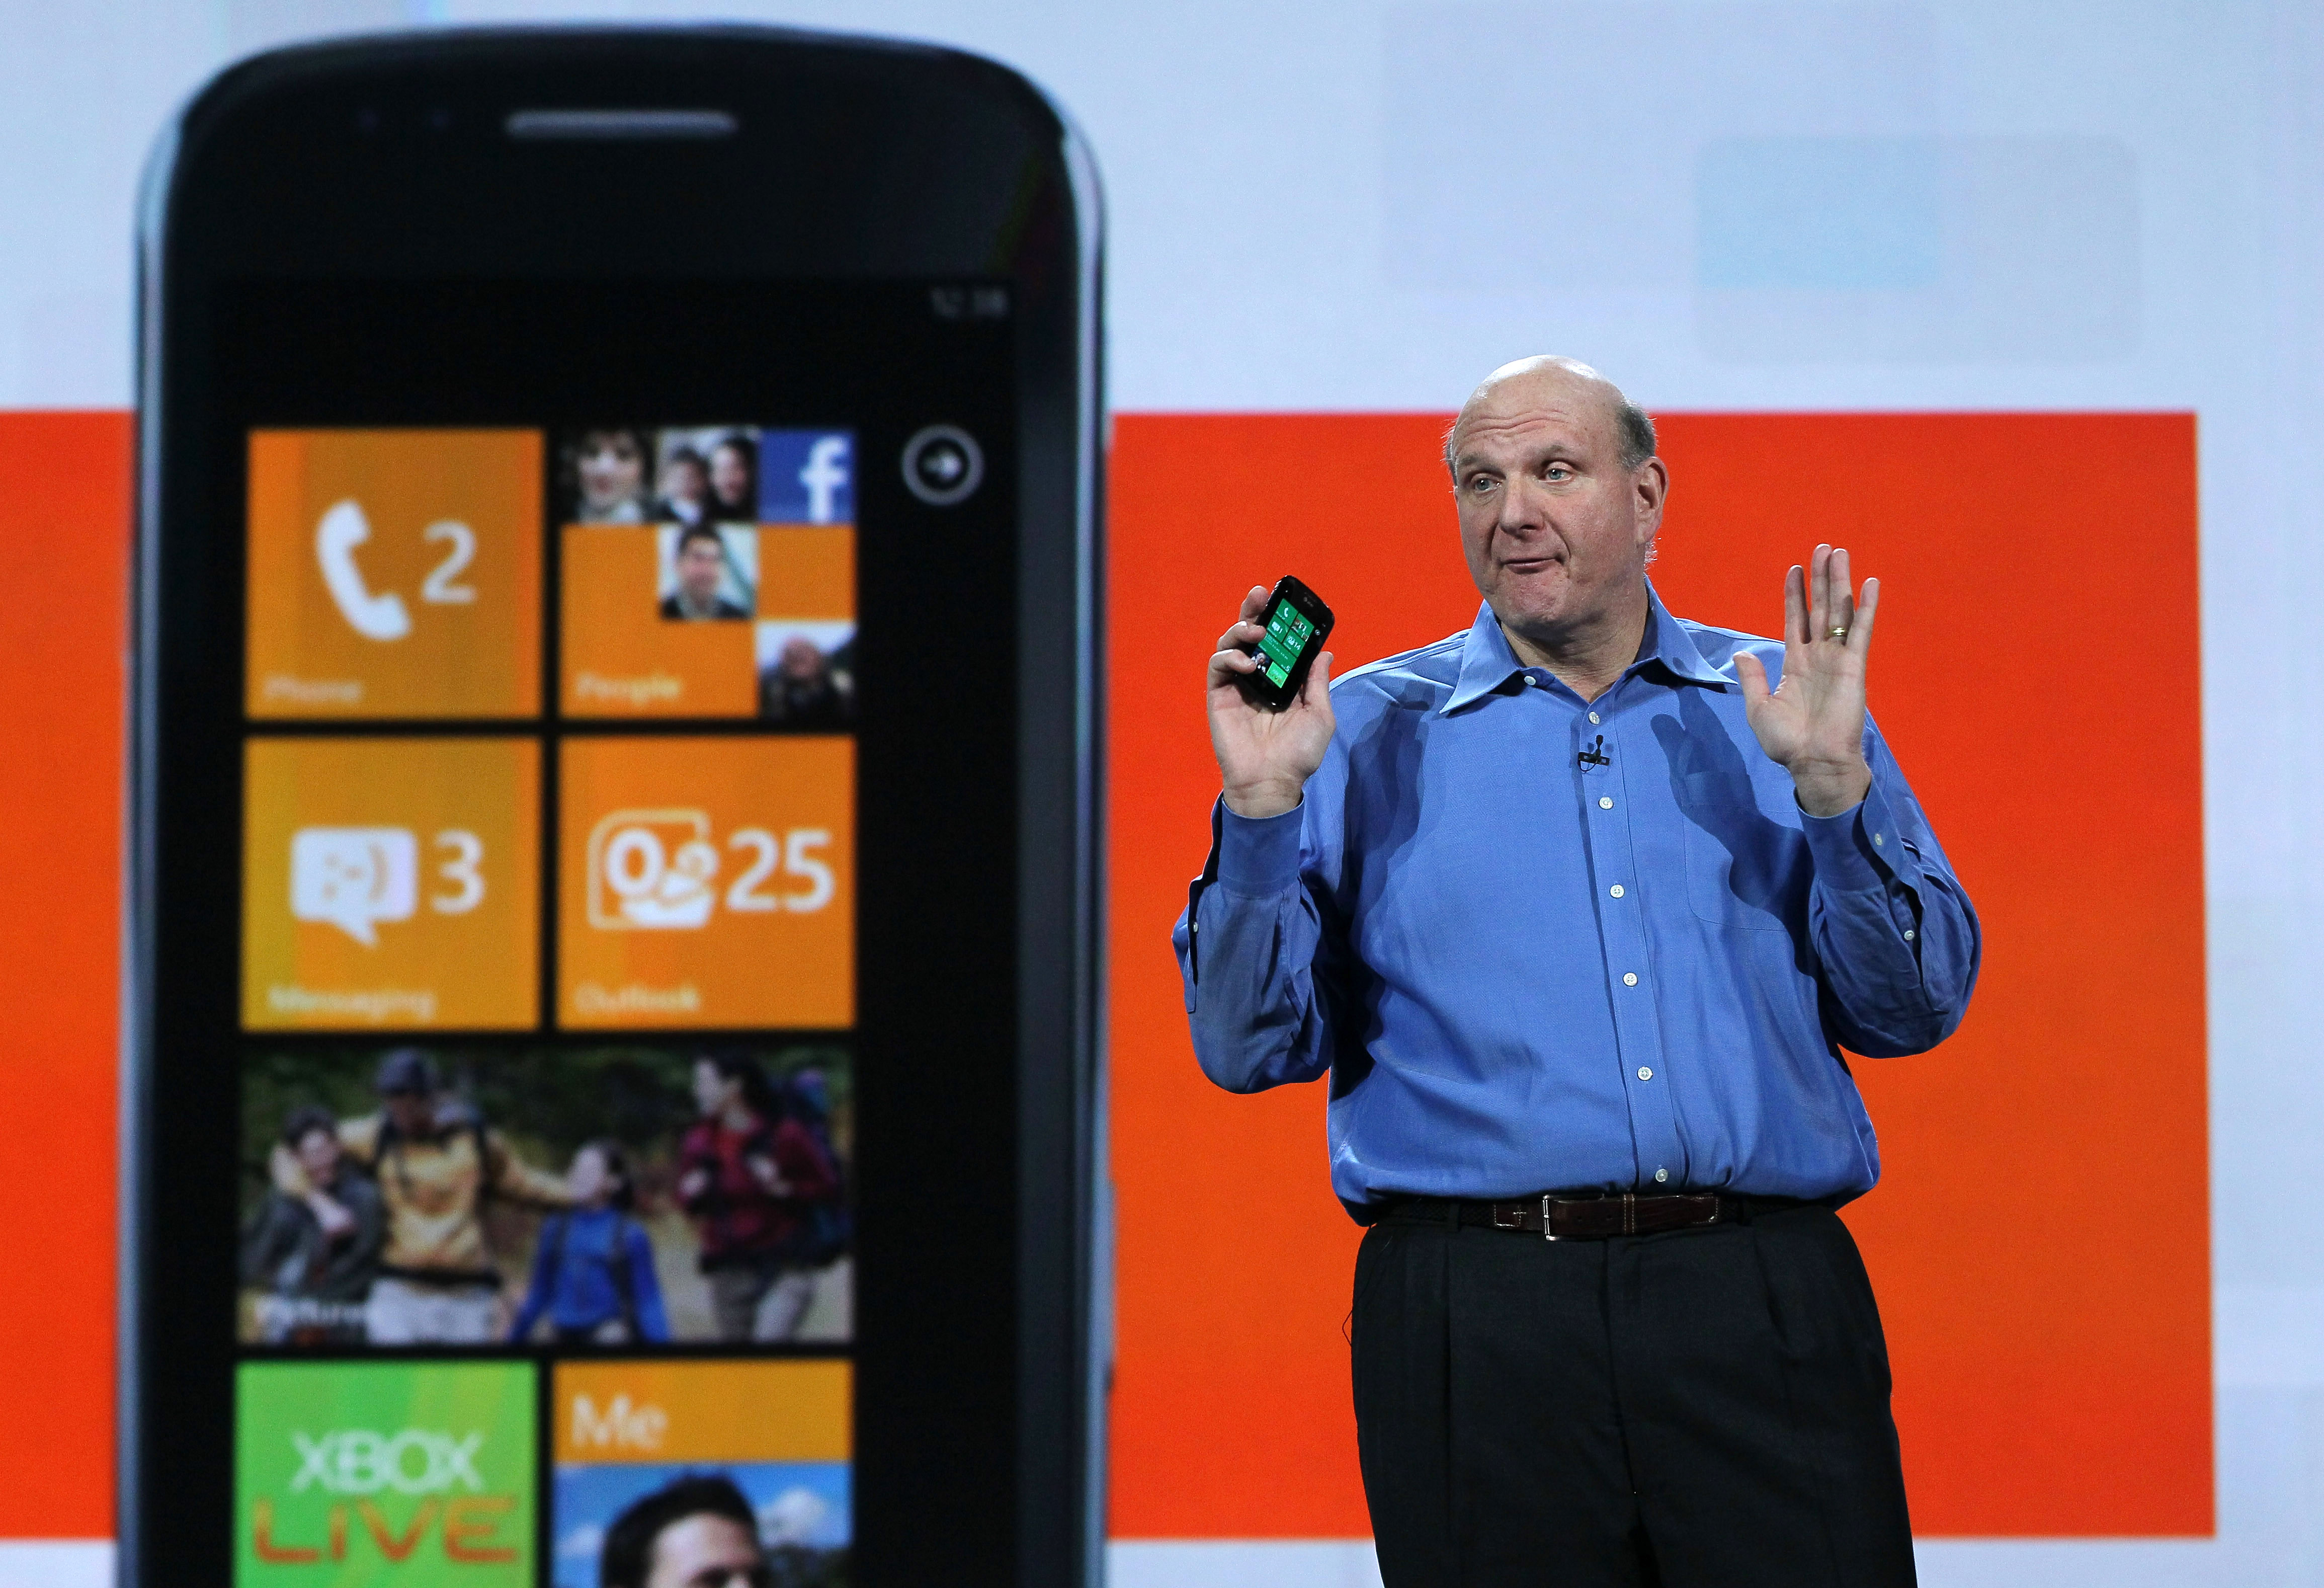 Microsoft Buyback Program: $350 for Apple, Android, BlackBerry Devices